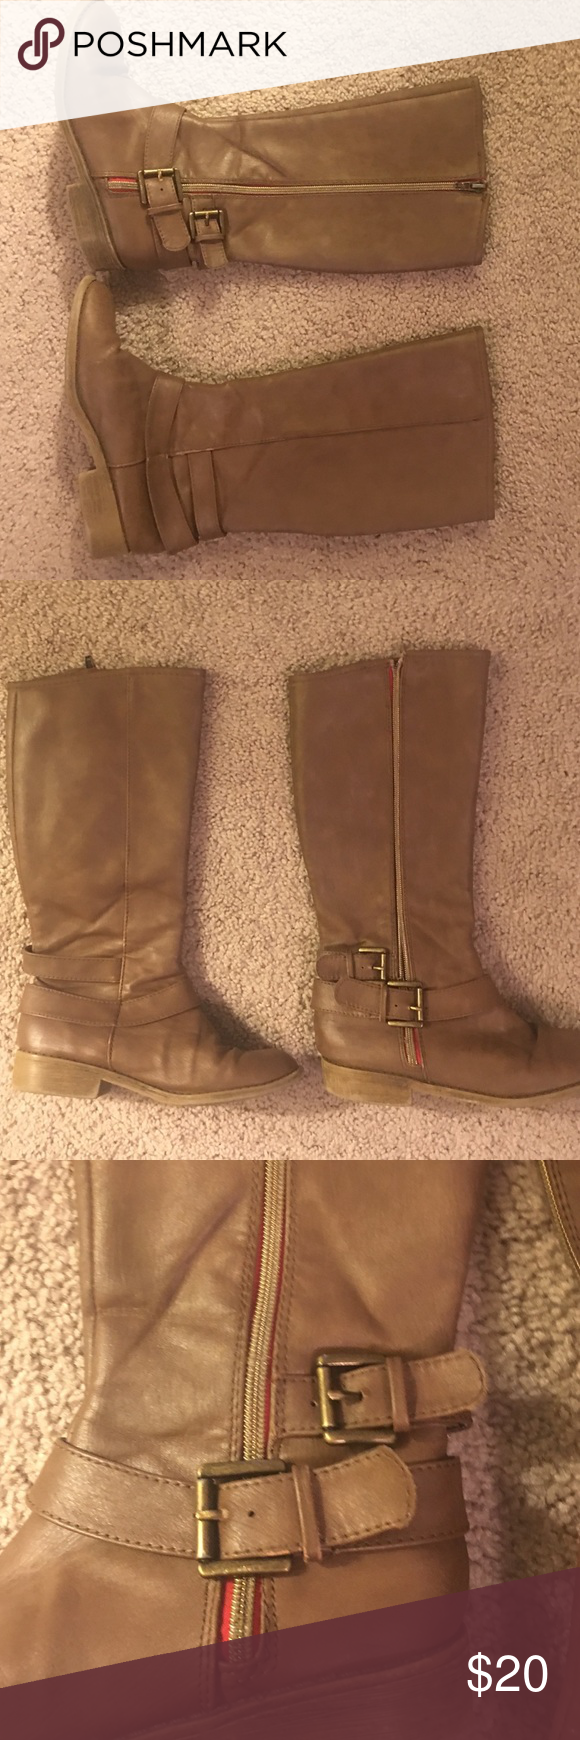 Girl's size 4 knee high Justice boot Brown knee high Justice boot. Soft fabric on inside so there's no plastic rubbing against your daughters leg. There's a little bit of buckle and red detail. Please see photo. Not in perfect  condition. But, nothing noticeable. Will look perfect with polish if you wanted them to look that way. I pictured the most visible scuffs in last photo. Justice Shoes Boots